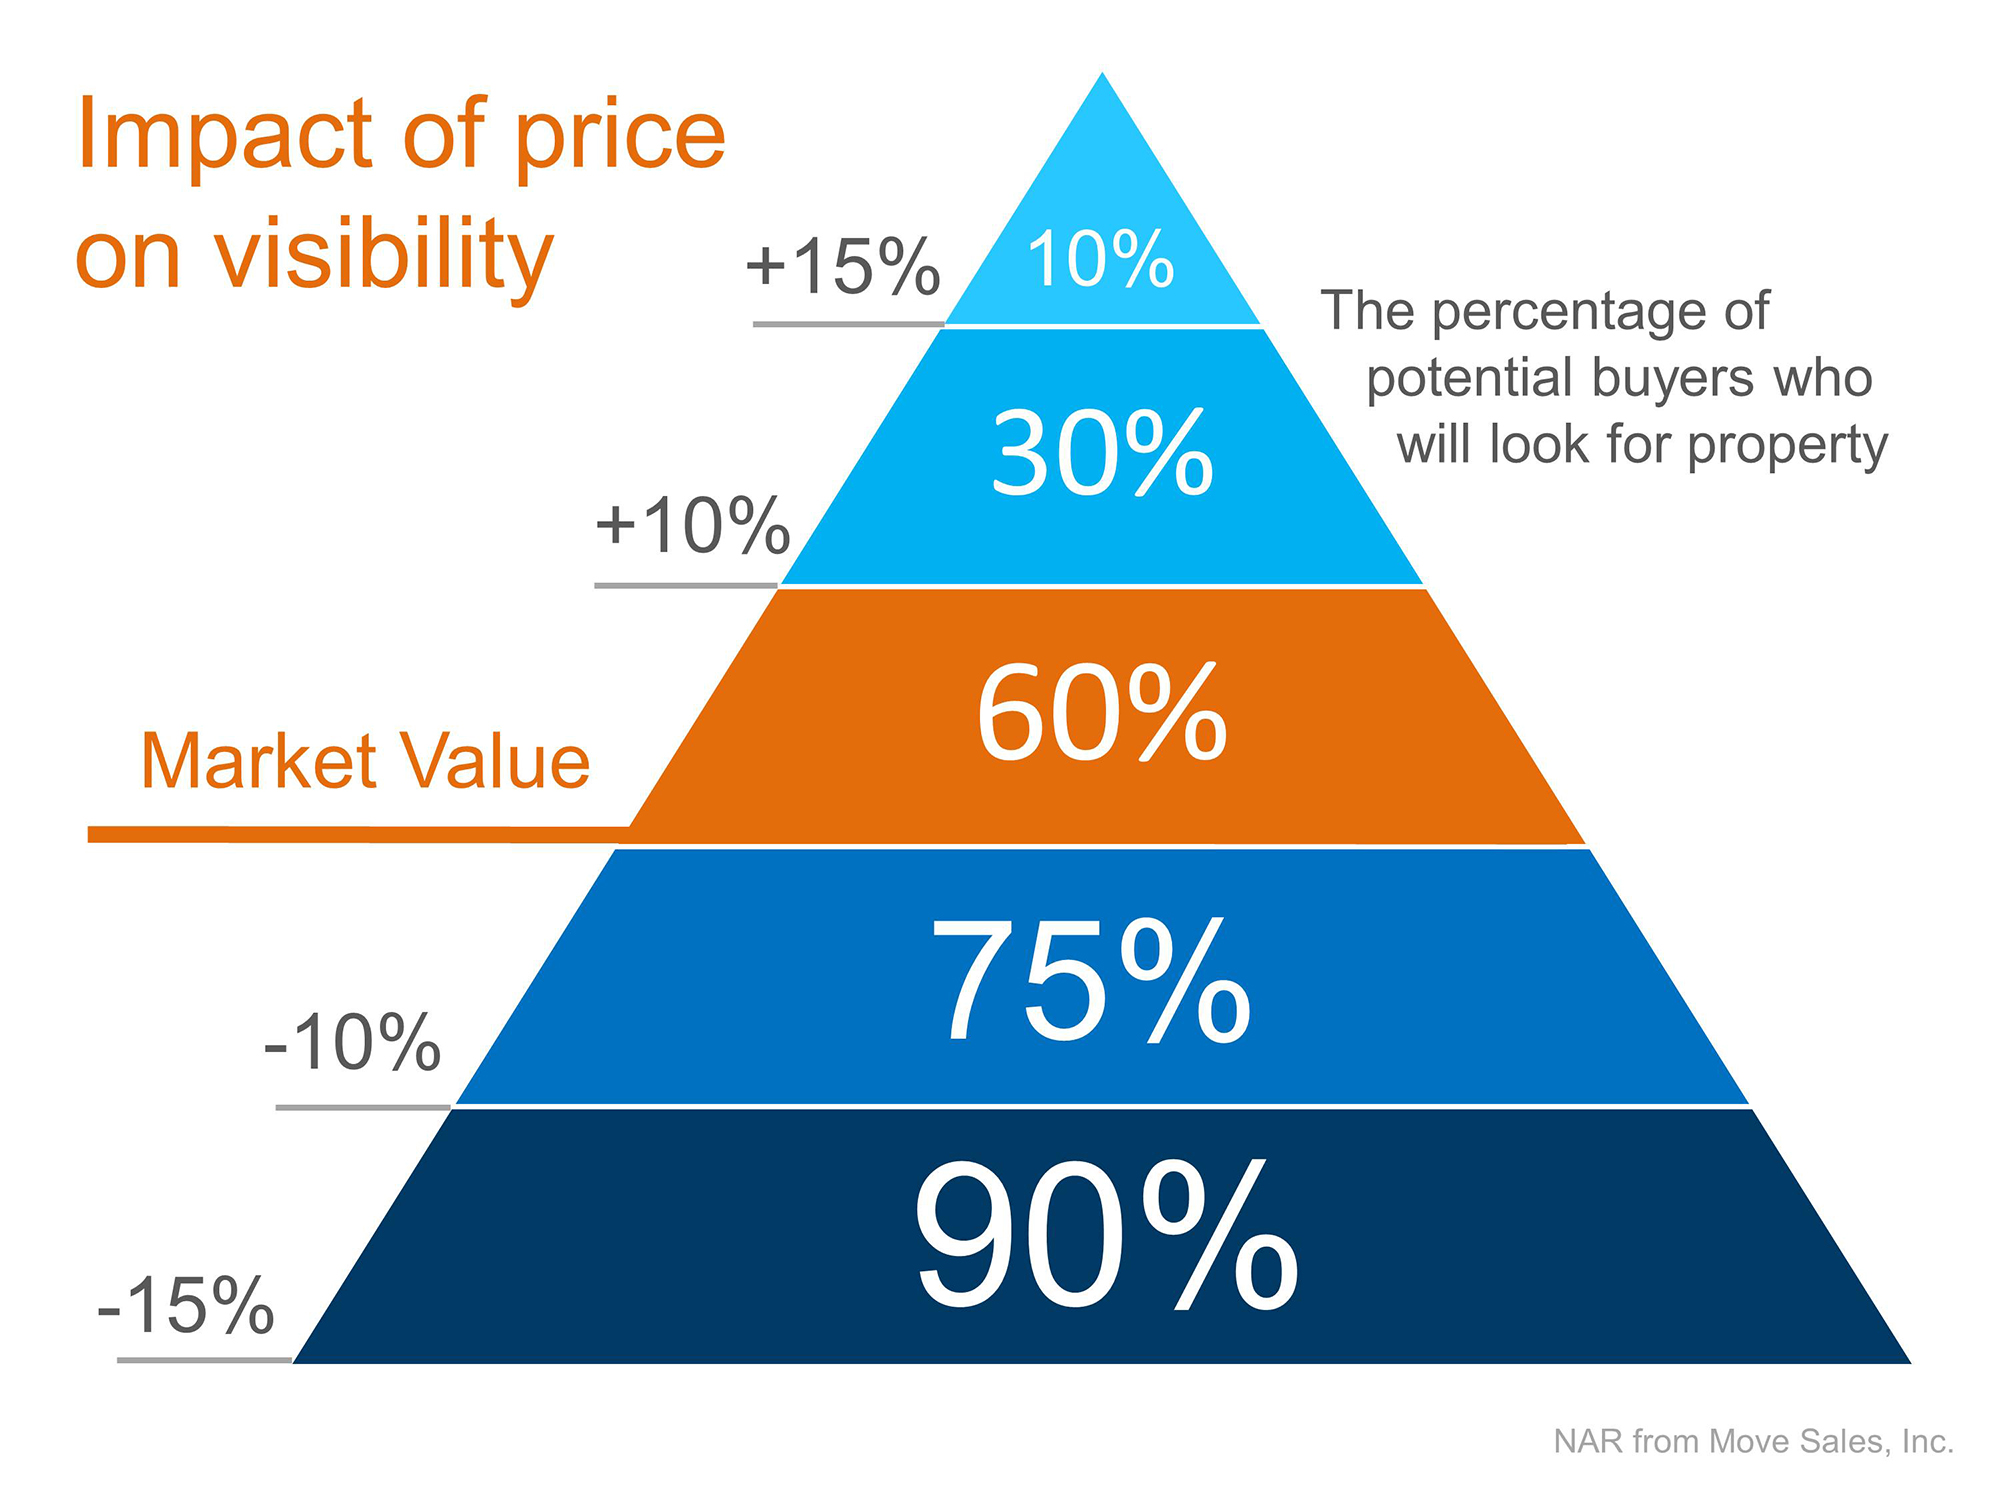 Impact of List Price on Visibility